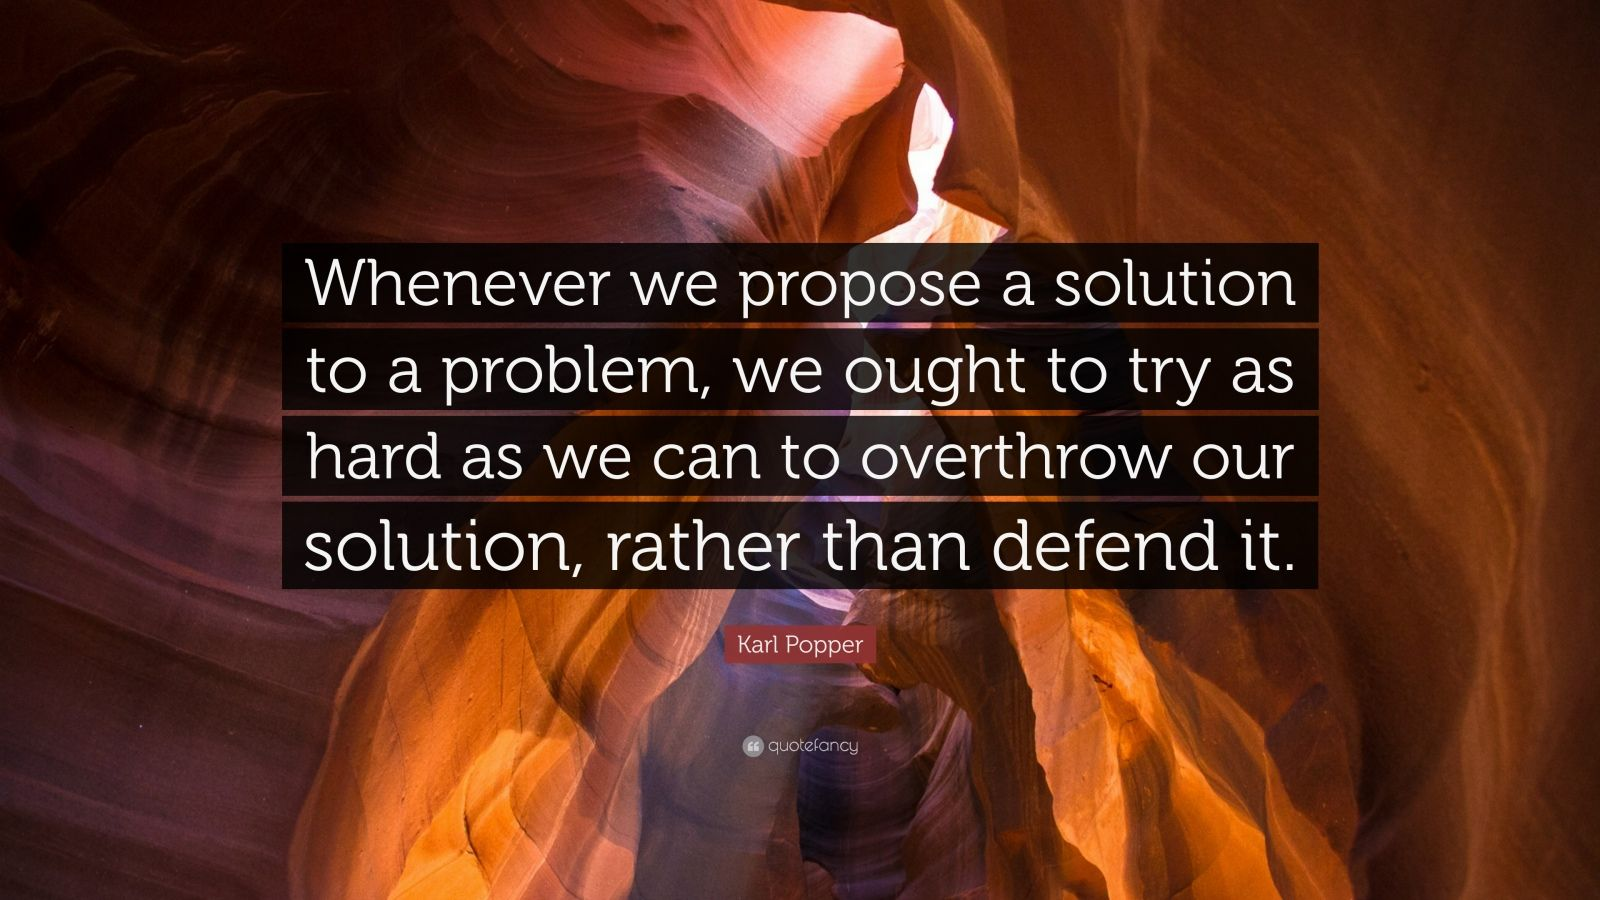 proposing a solution to a problem Here are 40 problem-solution essay topics to help you get started proposing solutions to social problems might seem challenging.